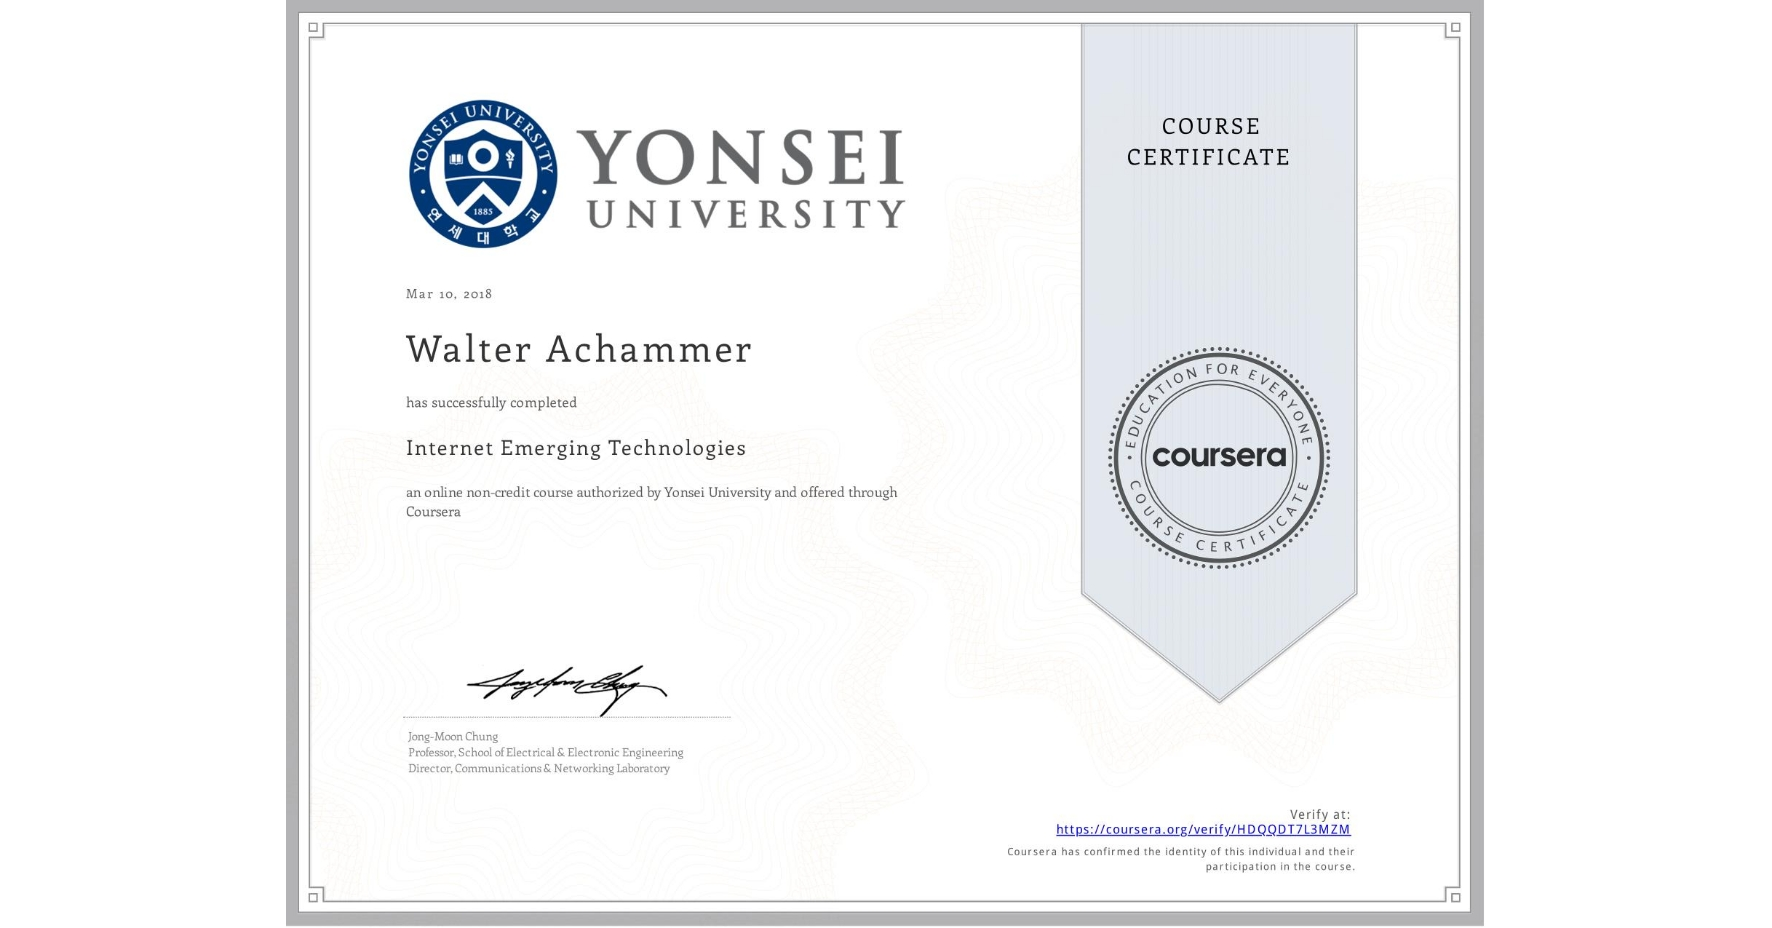 View certificate for Walter Achammer, Internet Emerging Technologies, an online non-credit course authorized by Yonsei University and offered through Coursera